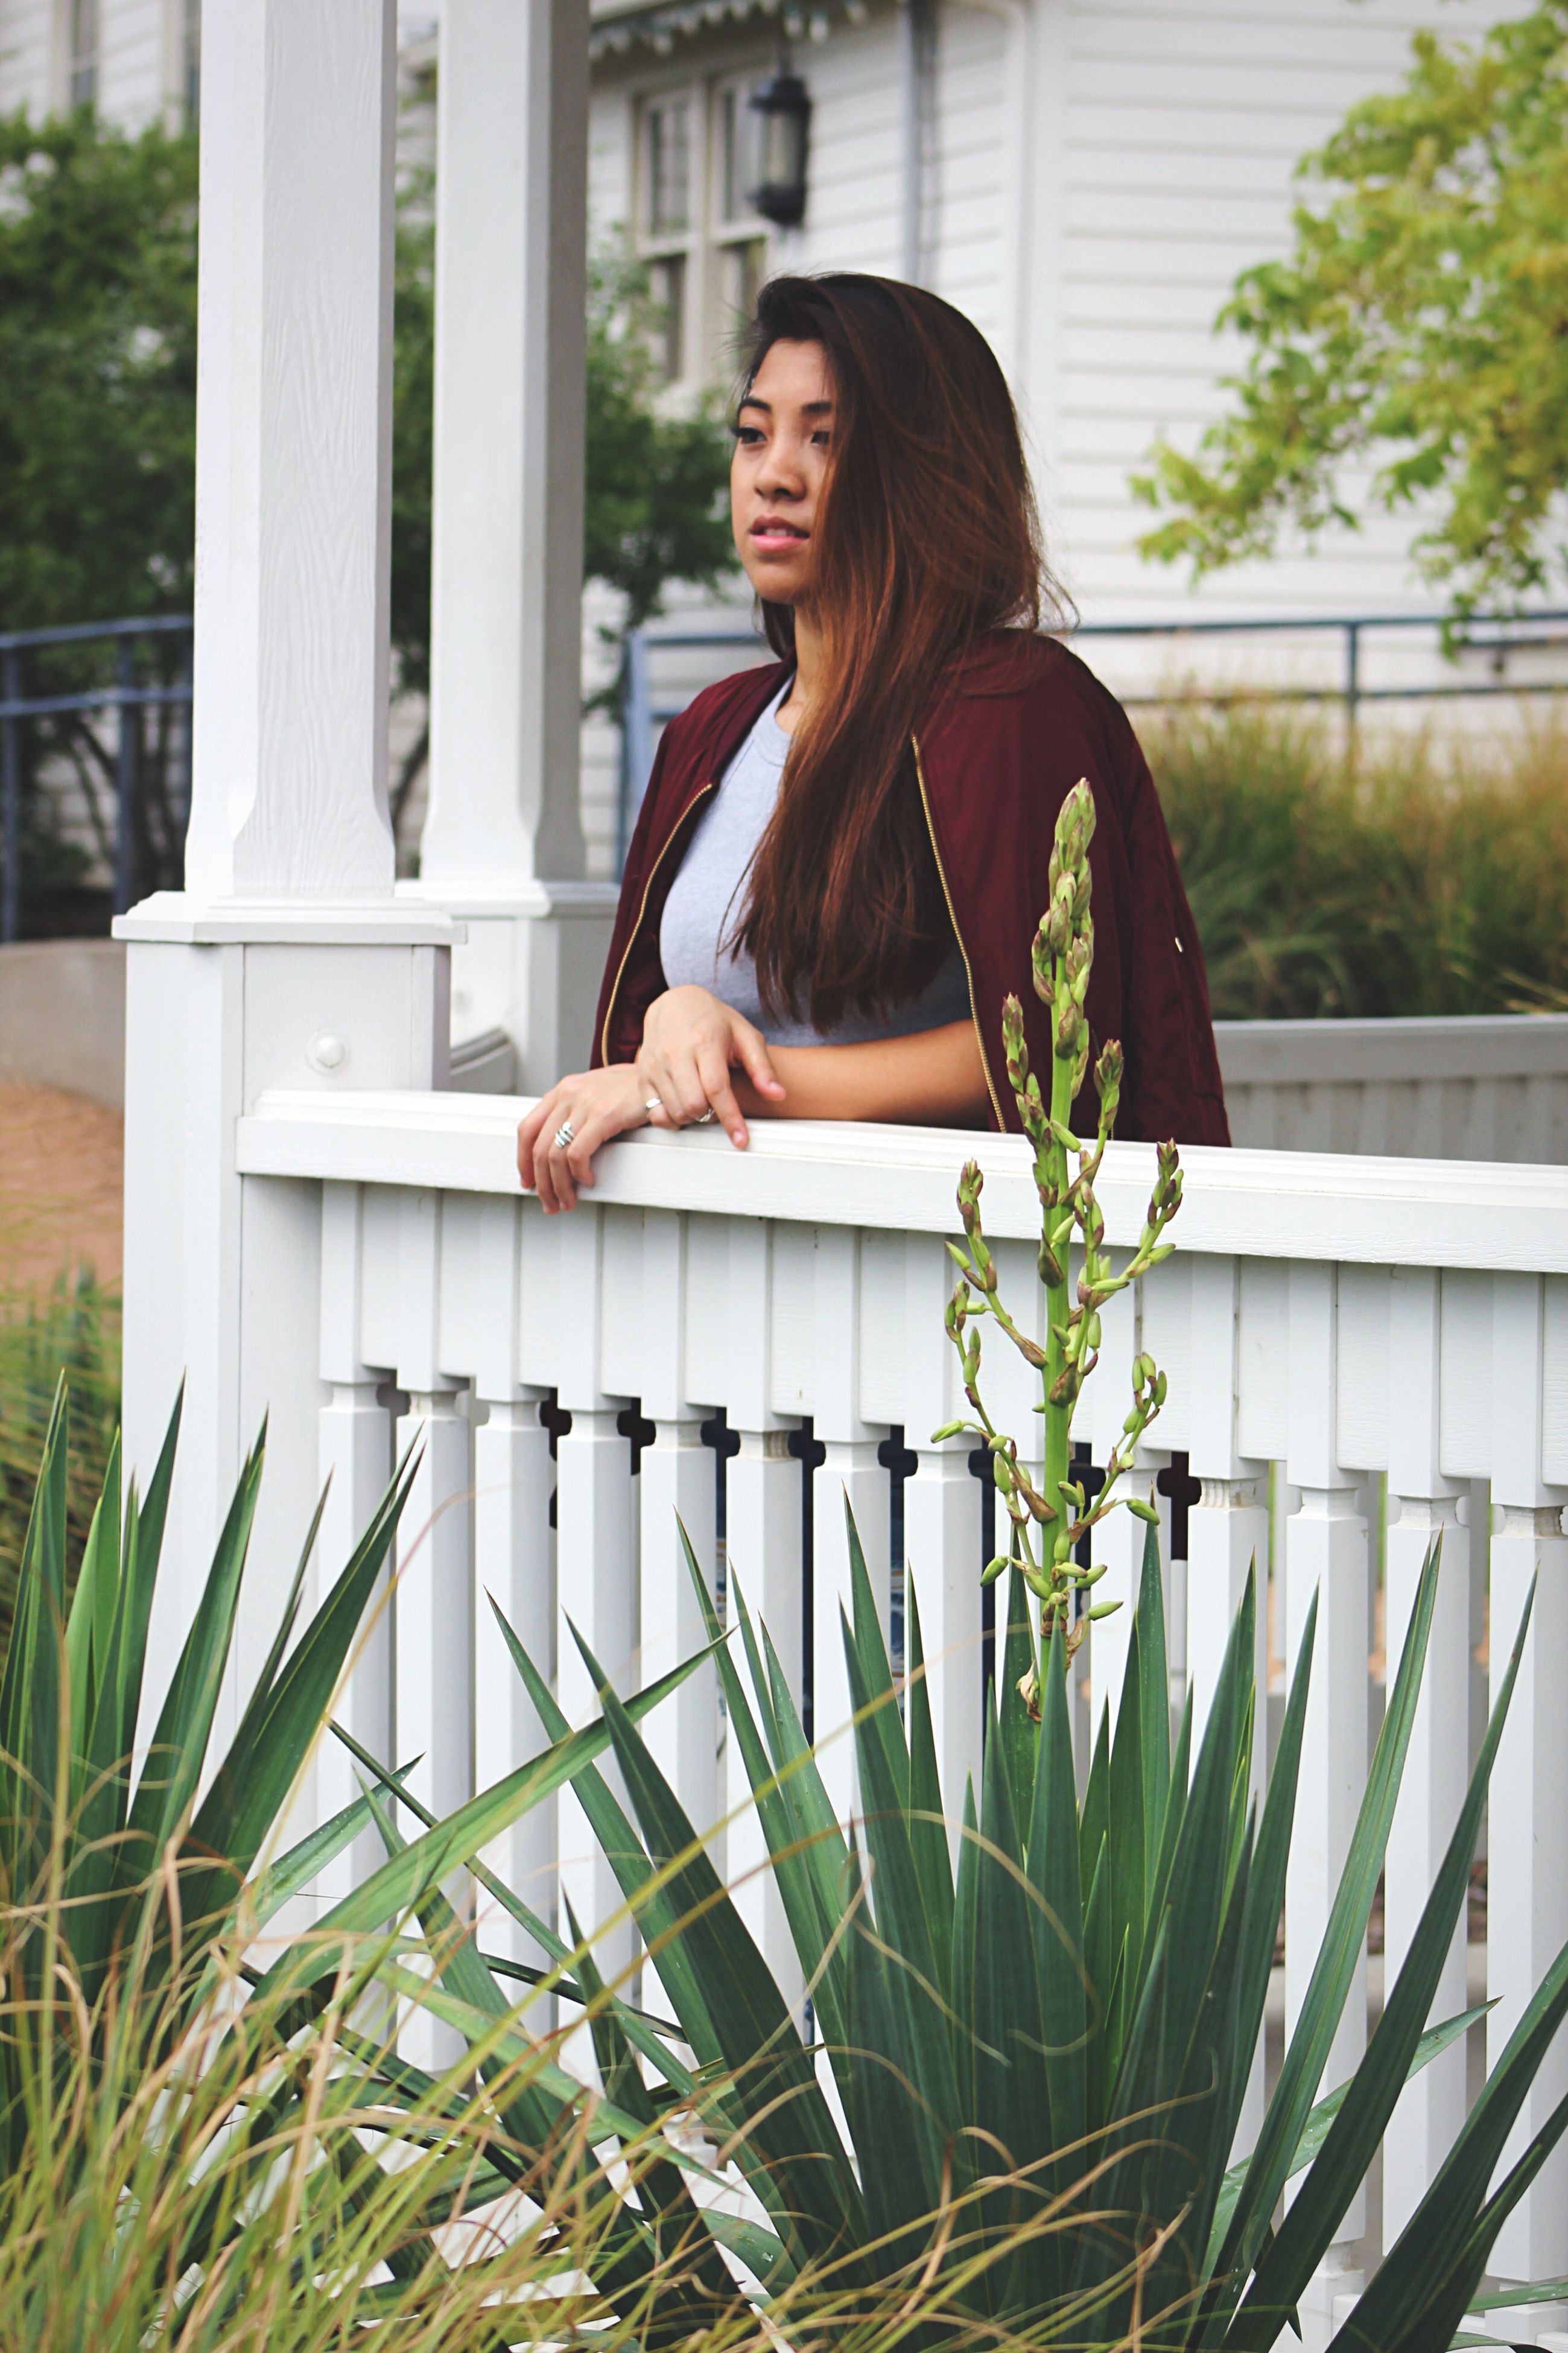 young women, young adult, person, lifestyles, leisure activity, long hair, casual clothing, plant, sitting, beauty, focus on foreground, full length, flower, nature, growth, outdoors, confidence, day